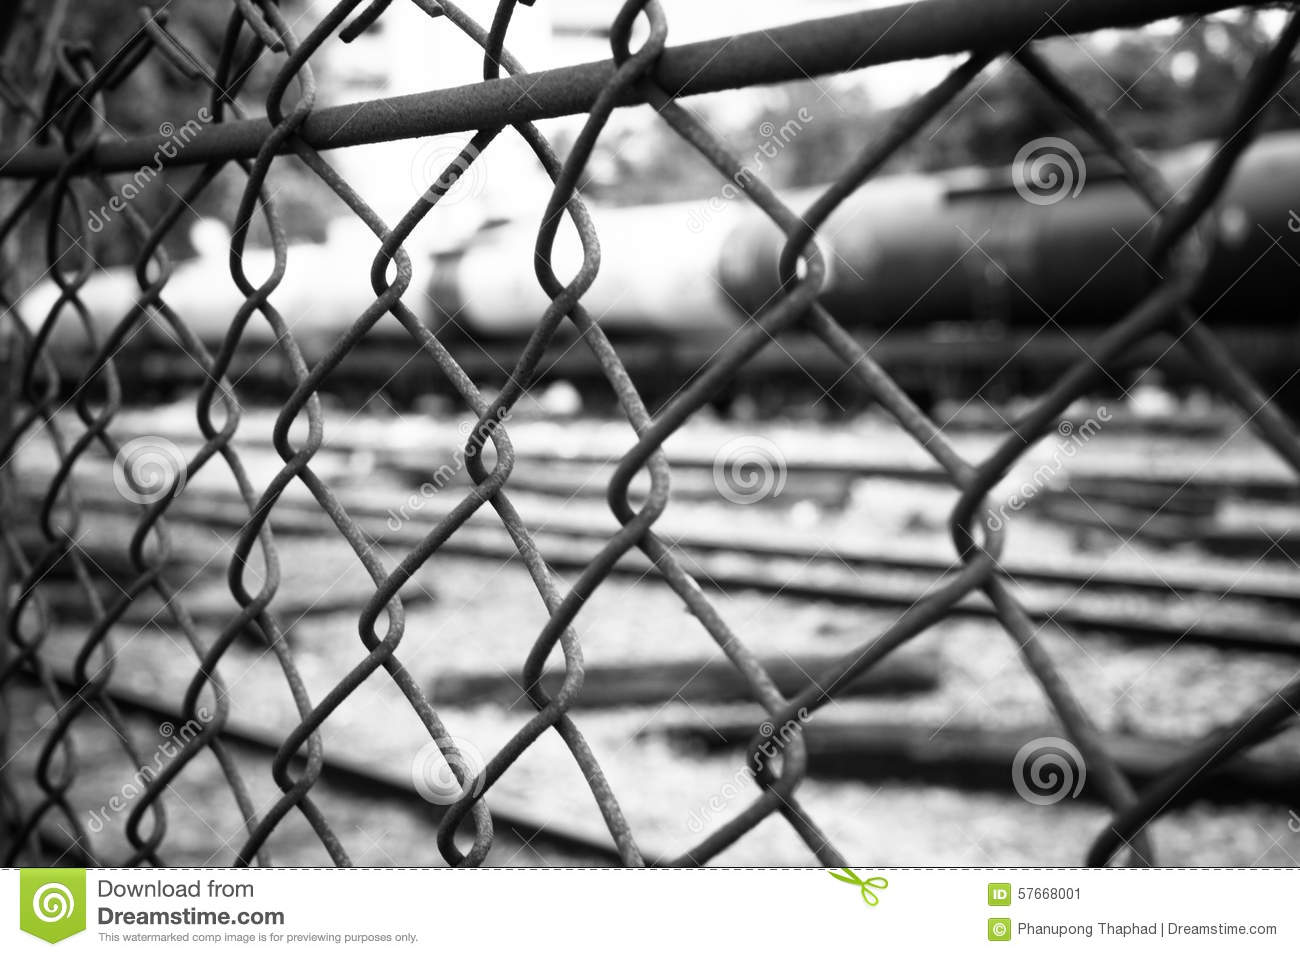 images of black and white barbed wire prison fence wire diagram barbed wire fence prison fence in black and white closeup stock